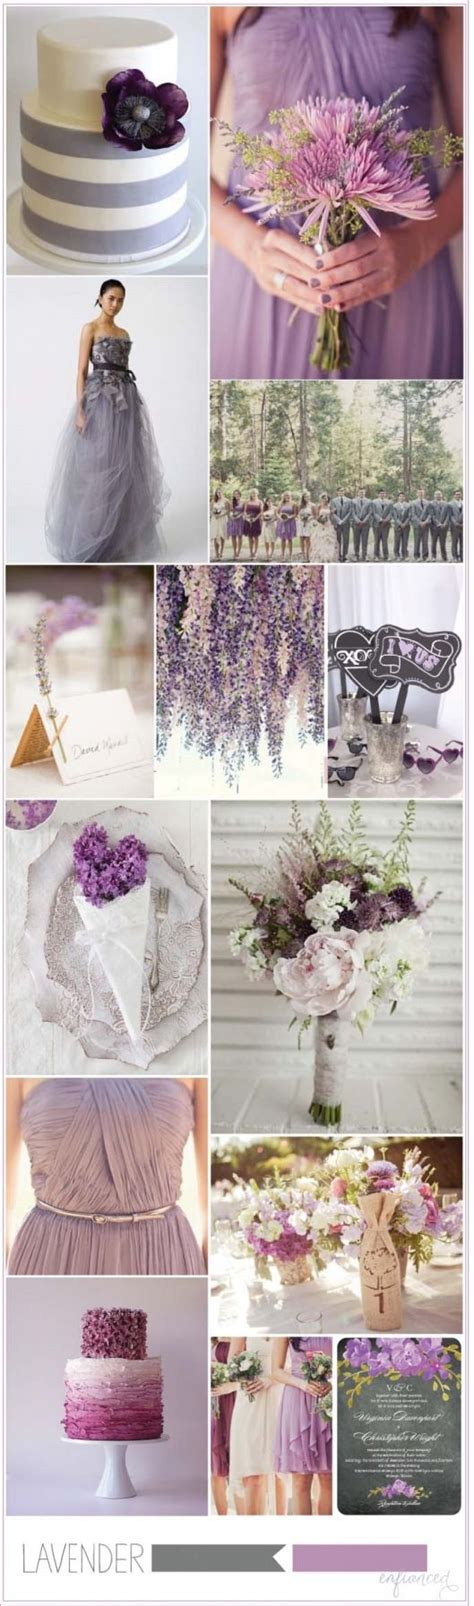 Weddings the gold inspiration boards planners budget lavender wedding